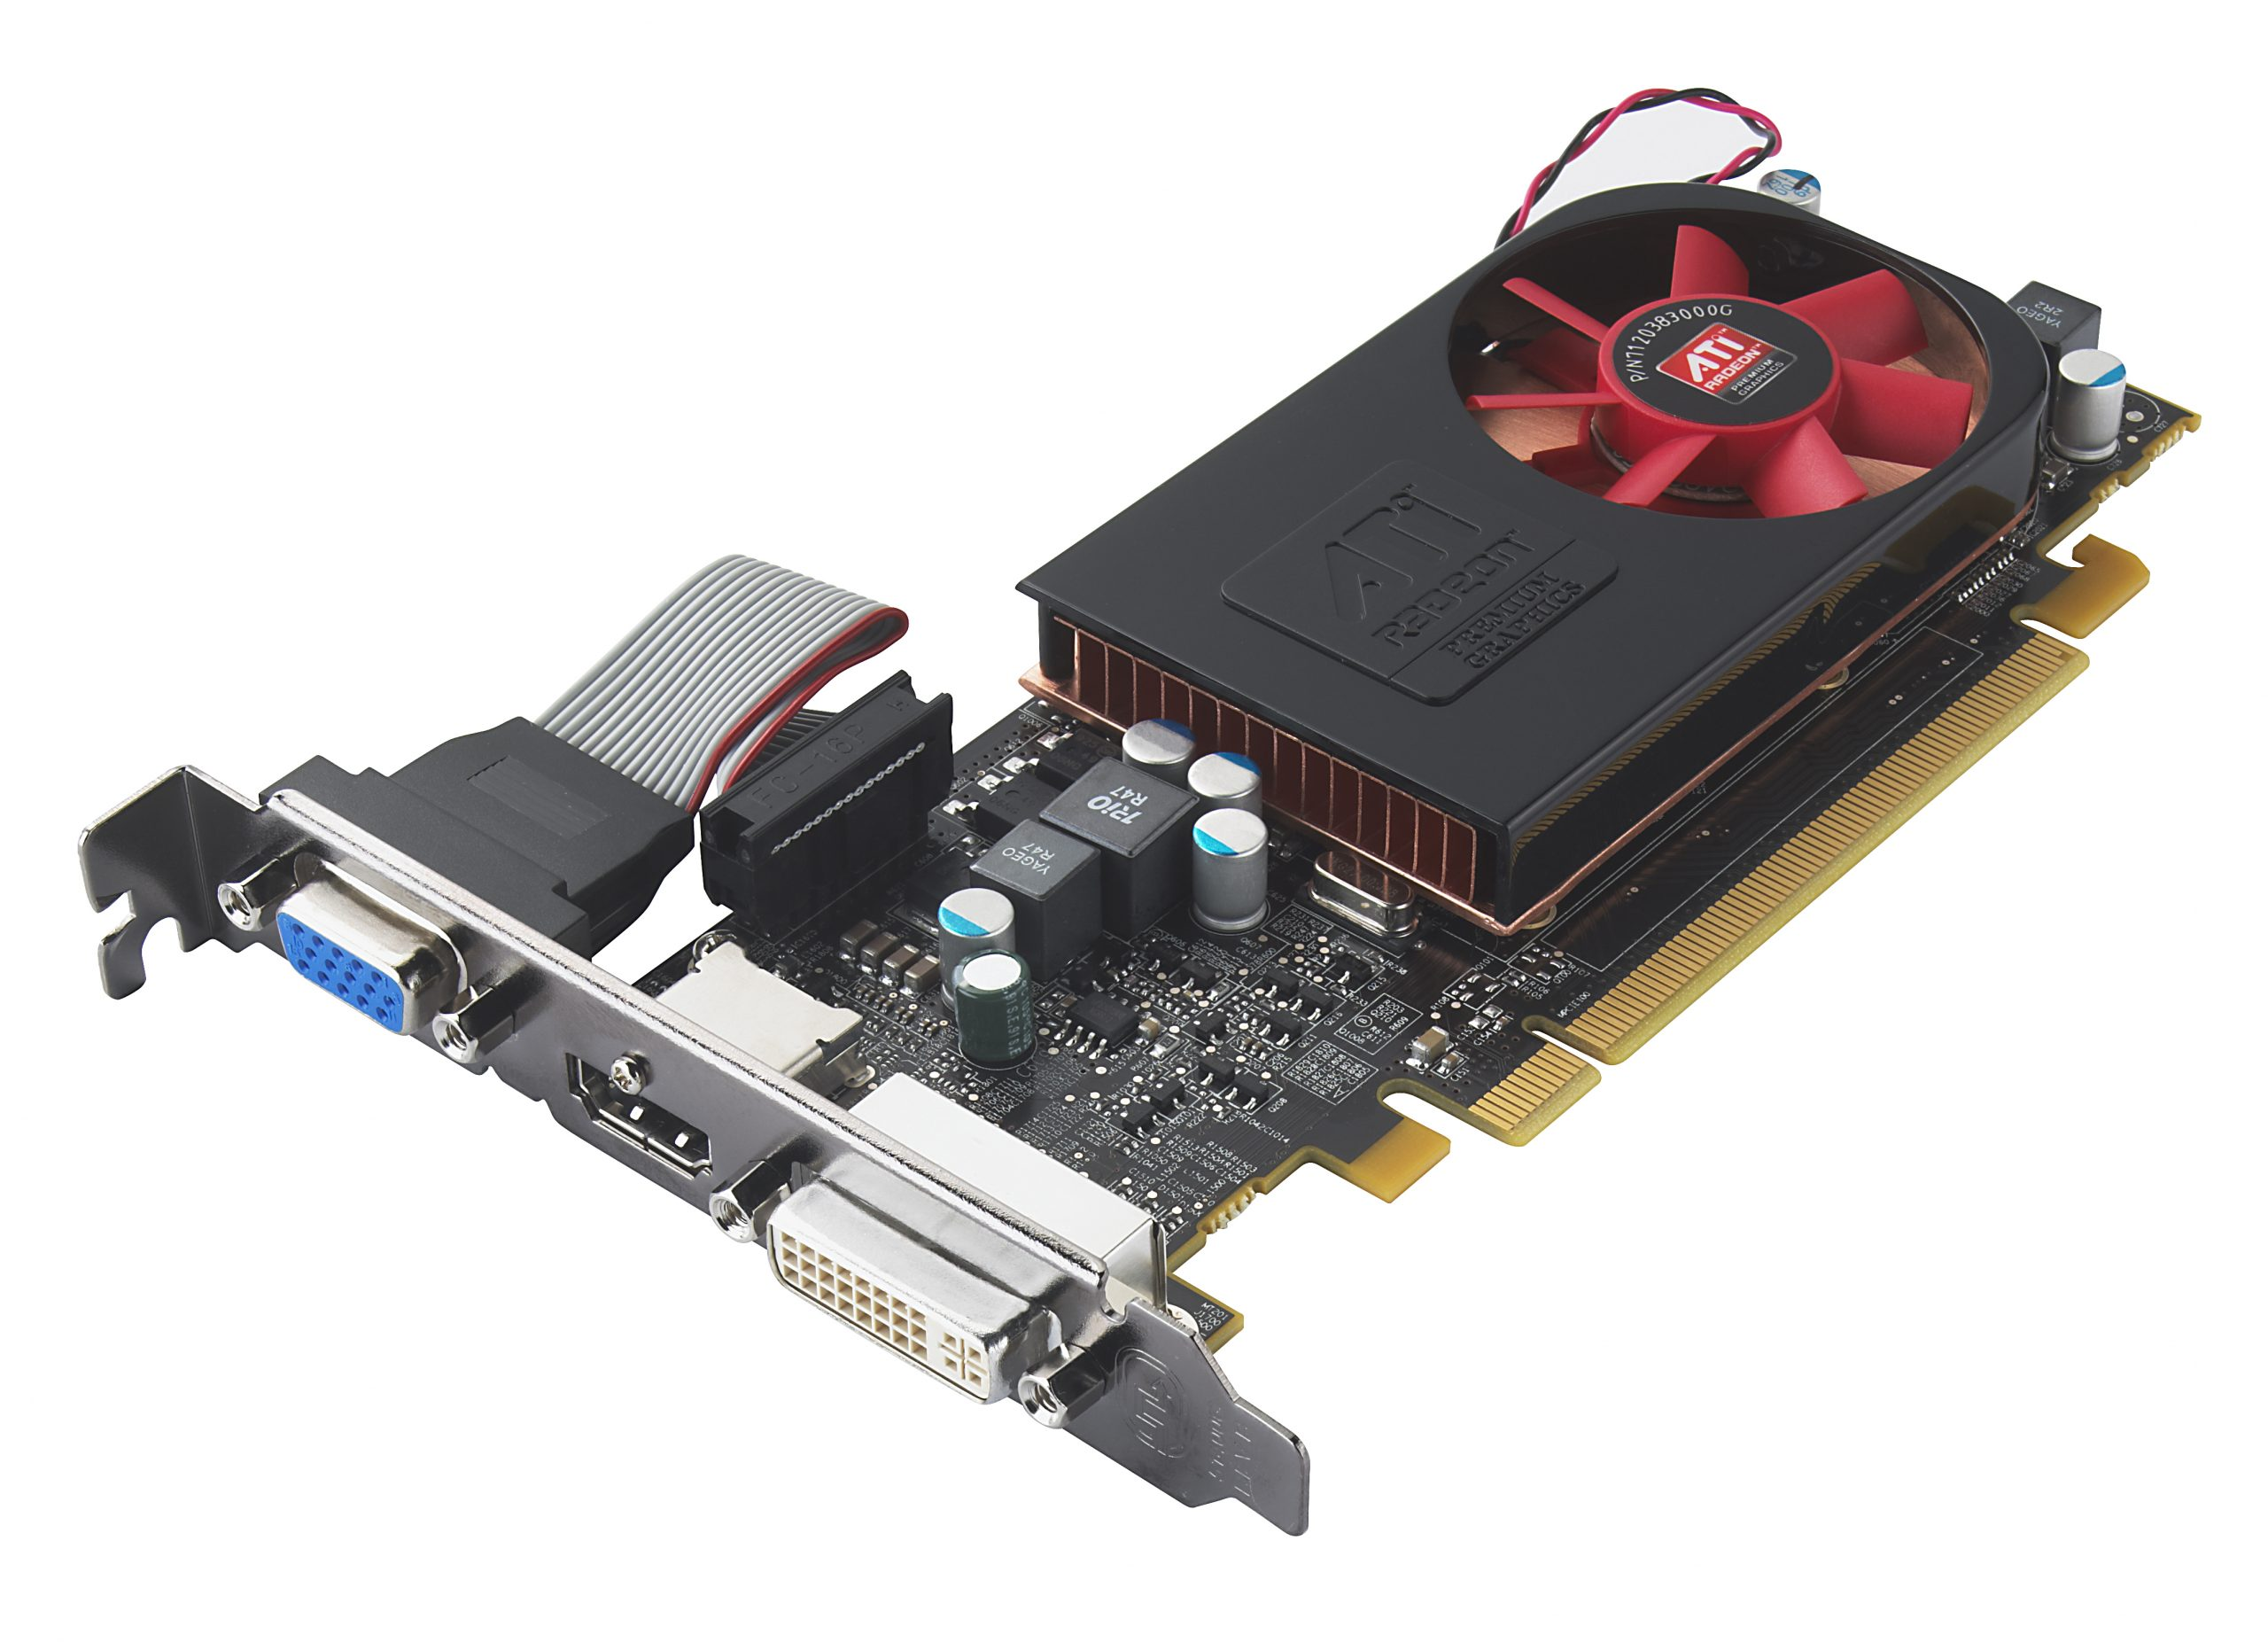 DRIVER FOR ATI RADEON HD 5570 GRAPHICS